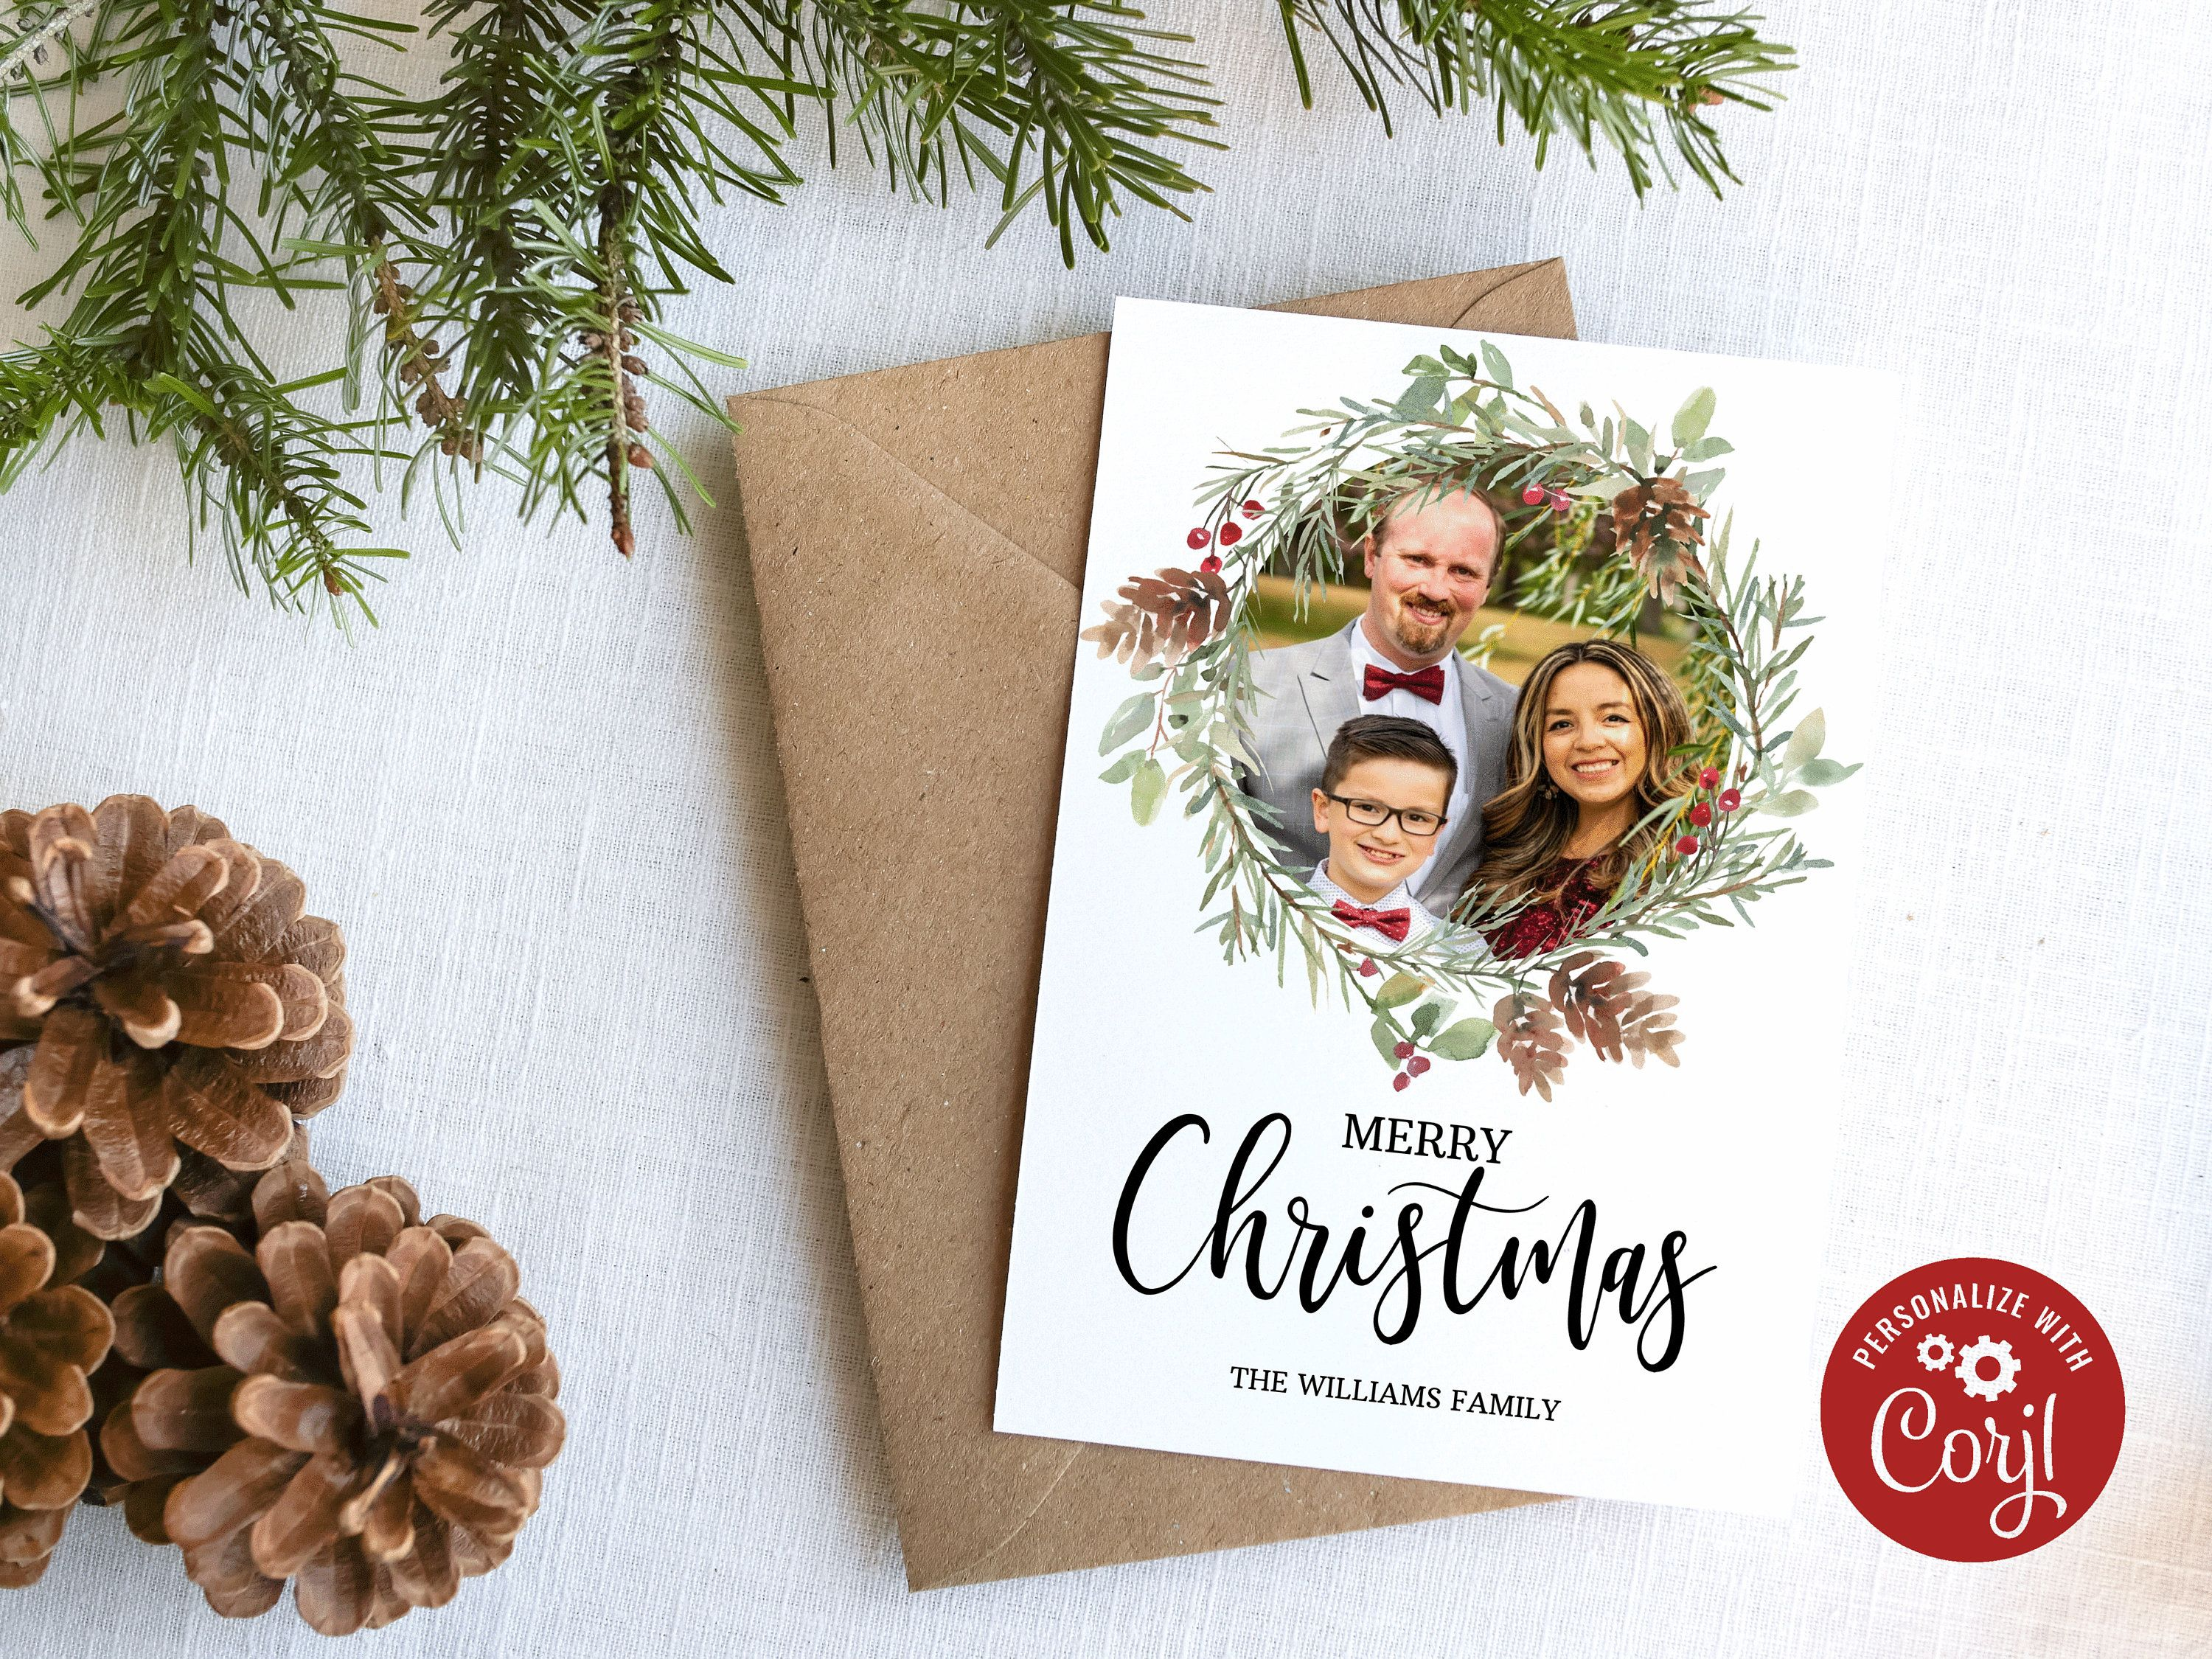 Christmas Card Template Christmas Photo Cards Photo Etsy In 2021 Christmas Card Template Christmas Photo Cards Christmas Photo Card Template